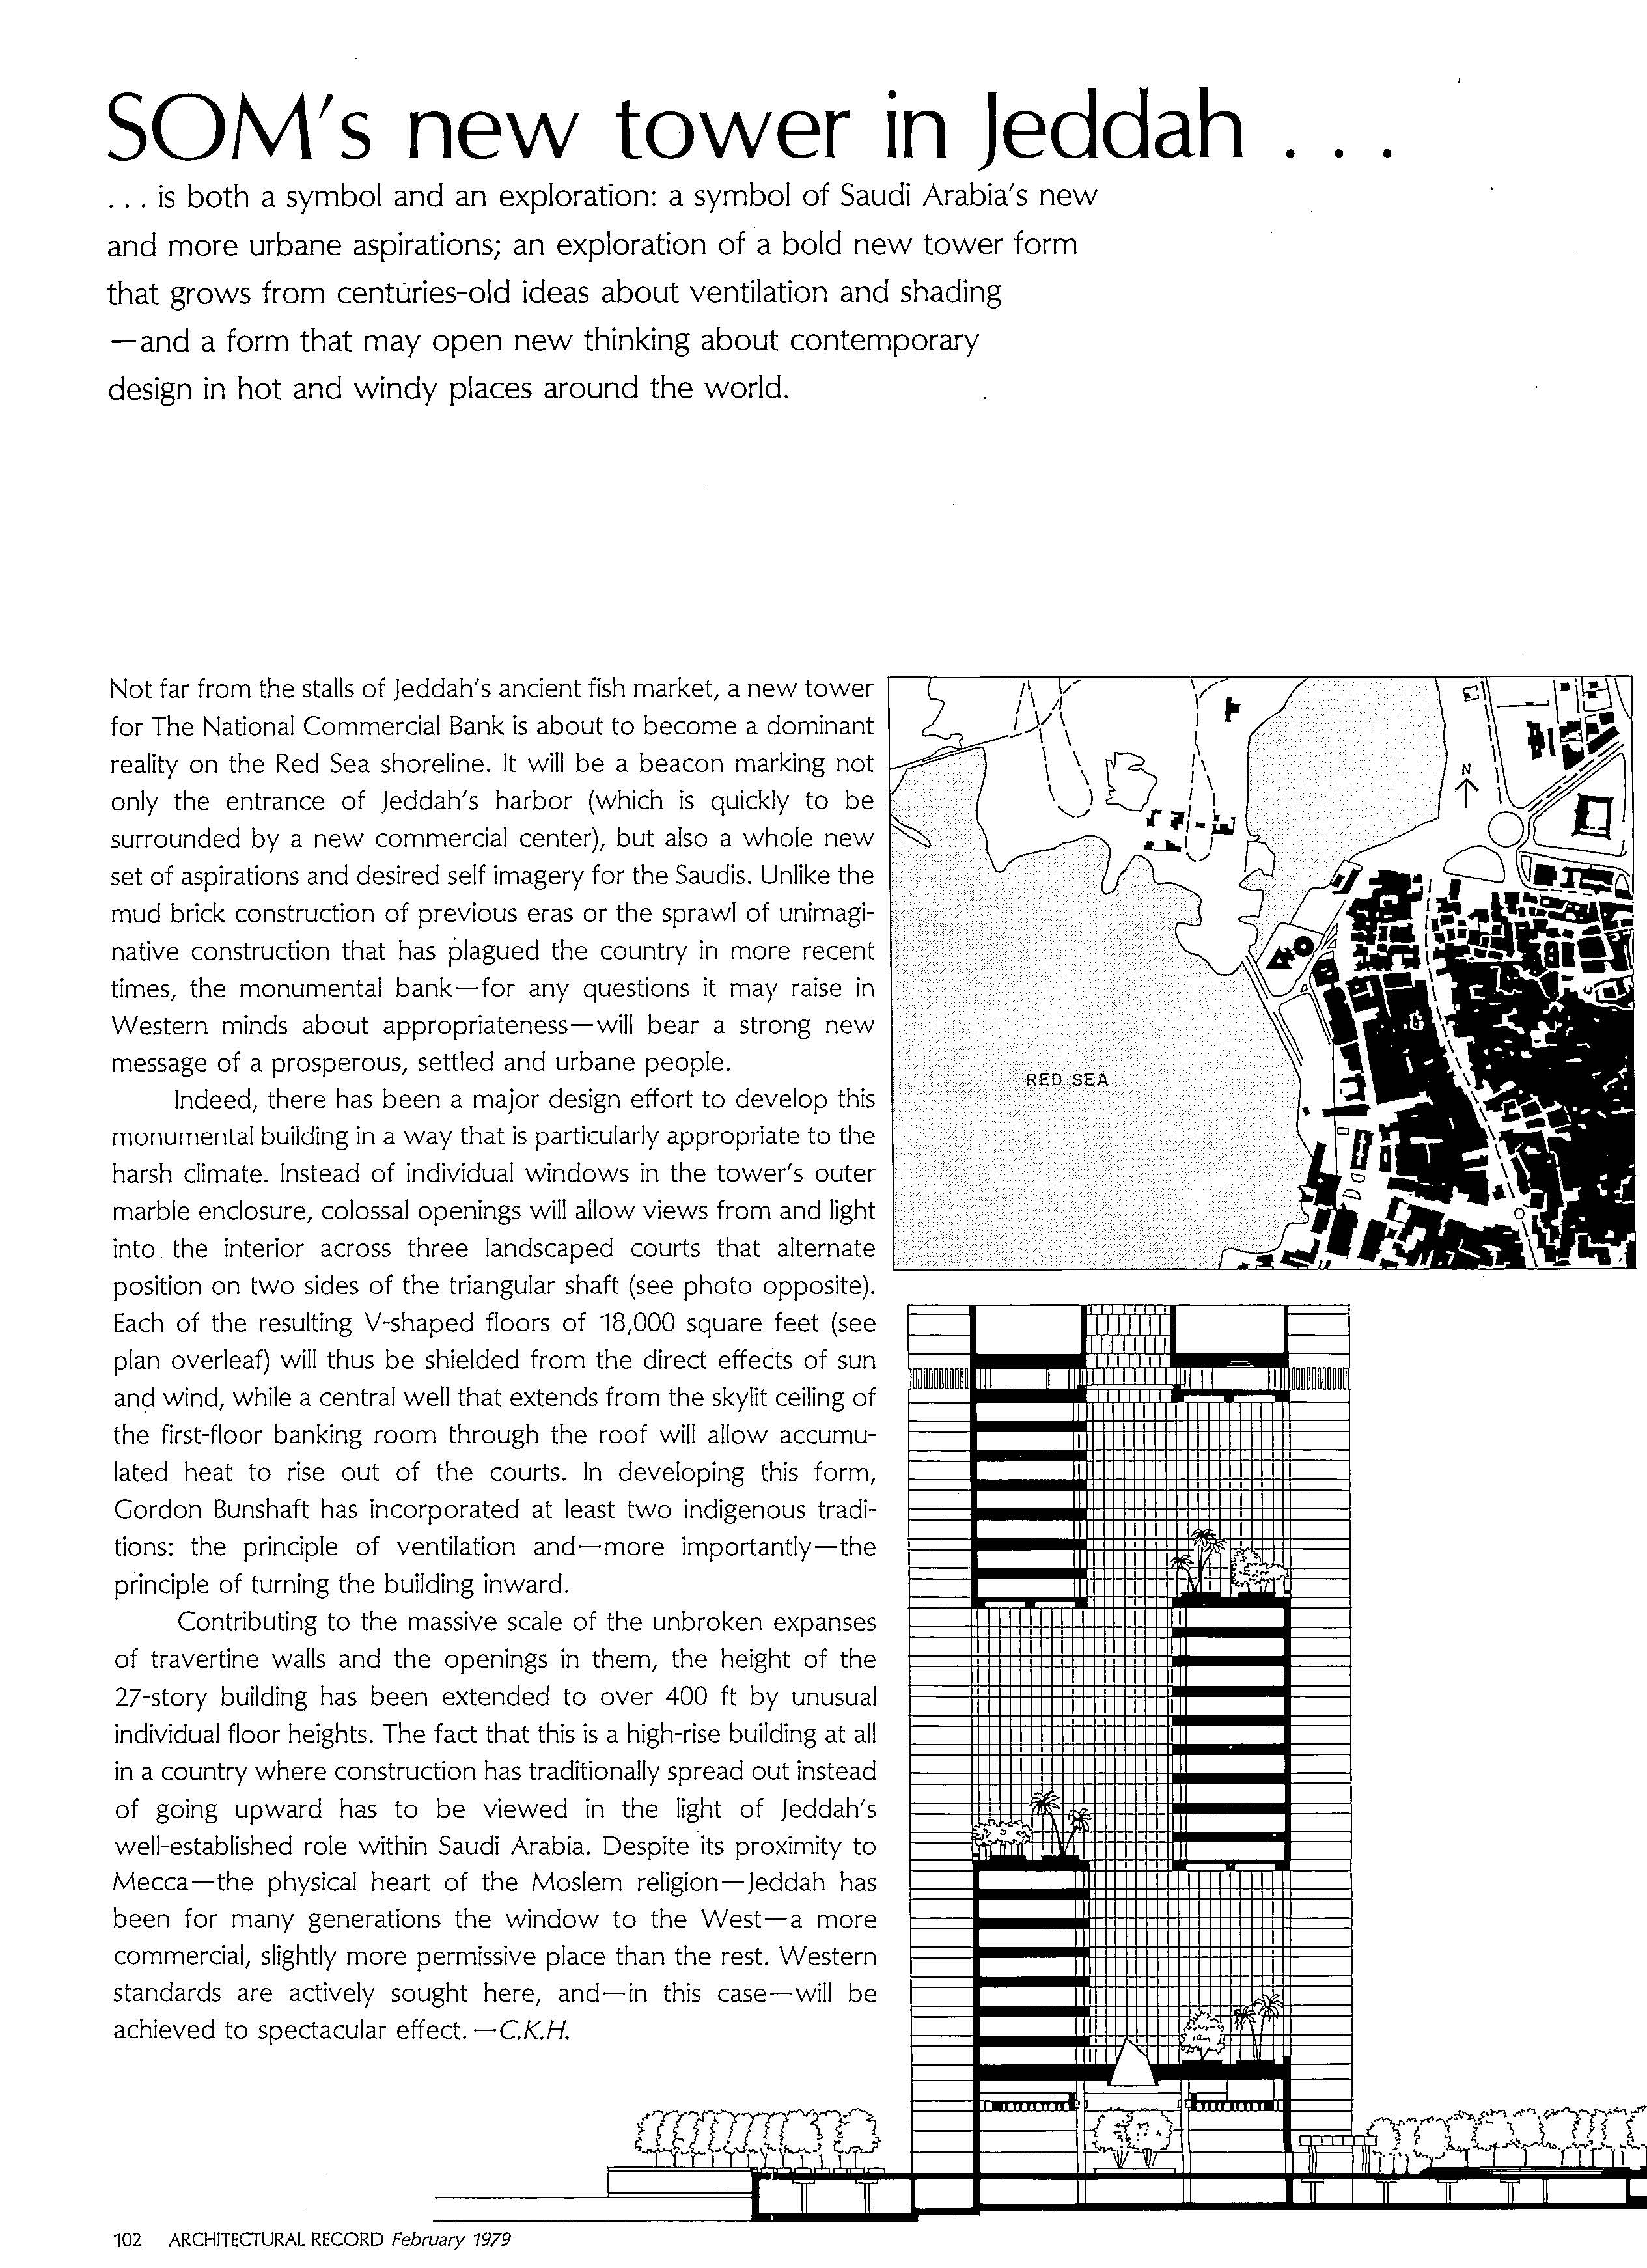 SOM New Tower in Jeddah_ from Architecture Record_1979-02-2_Page_1